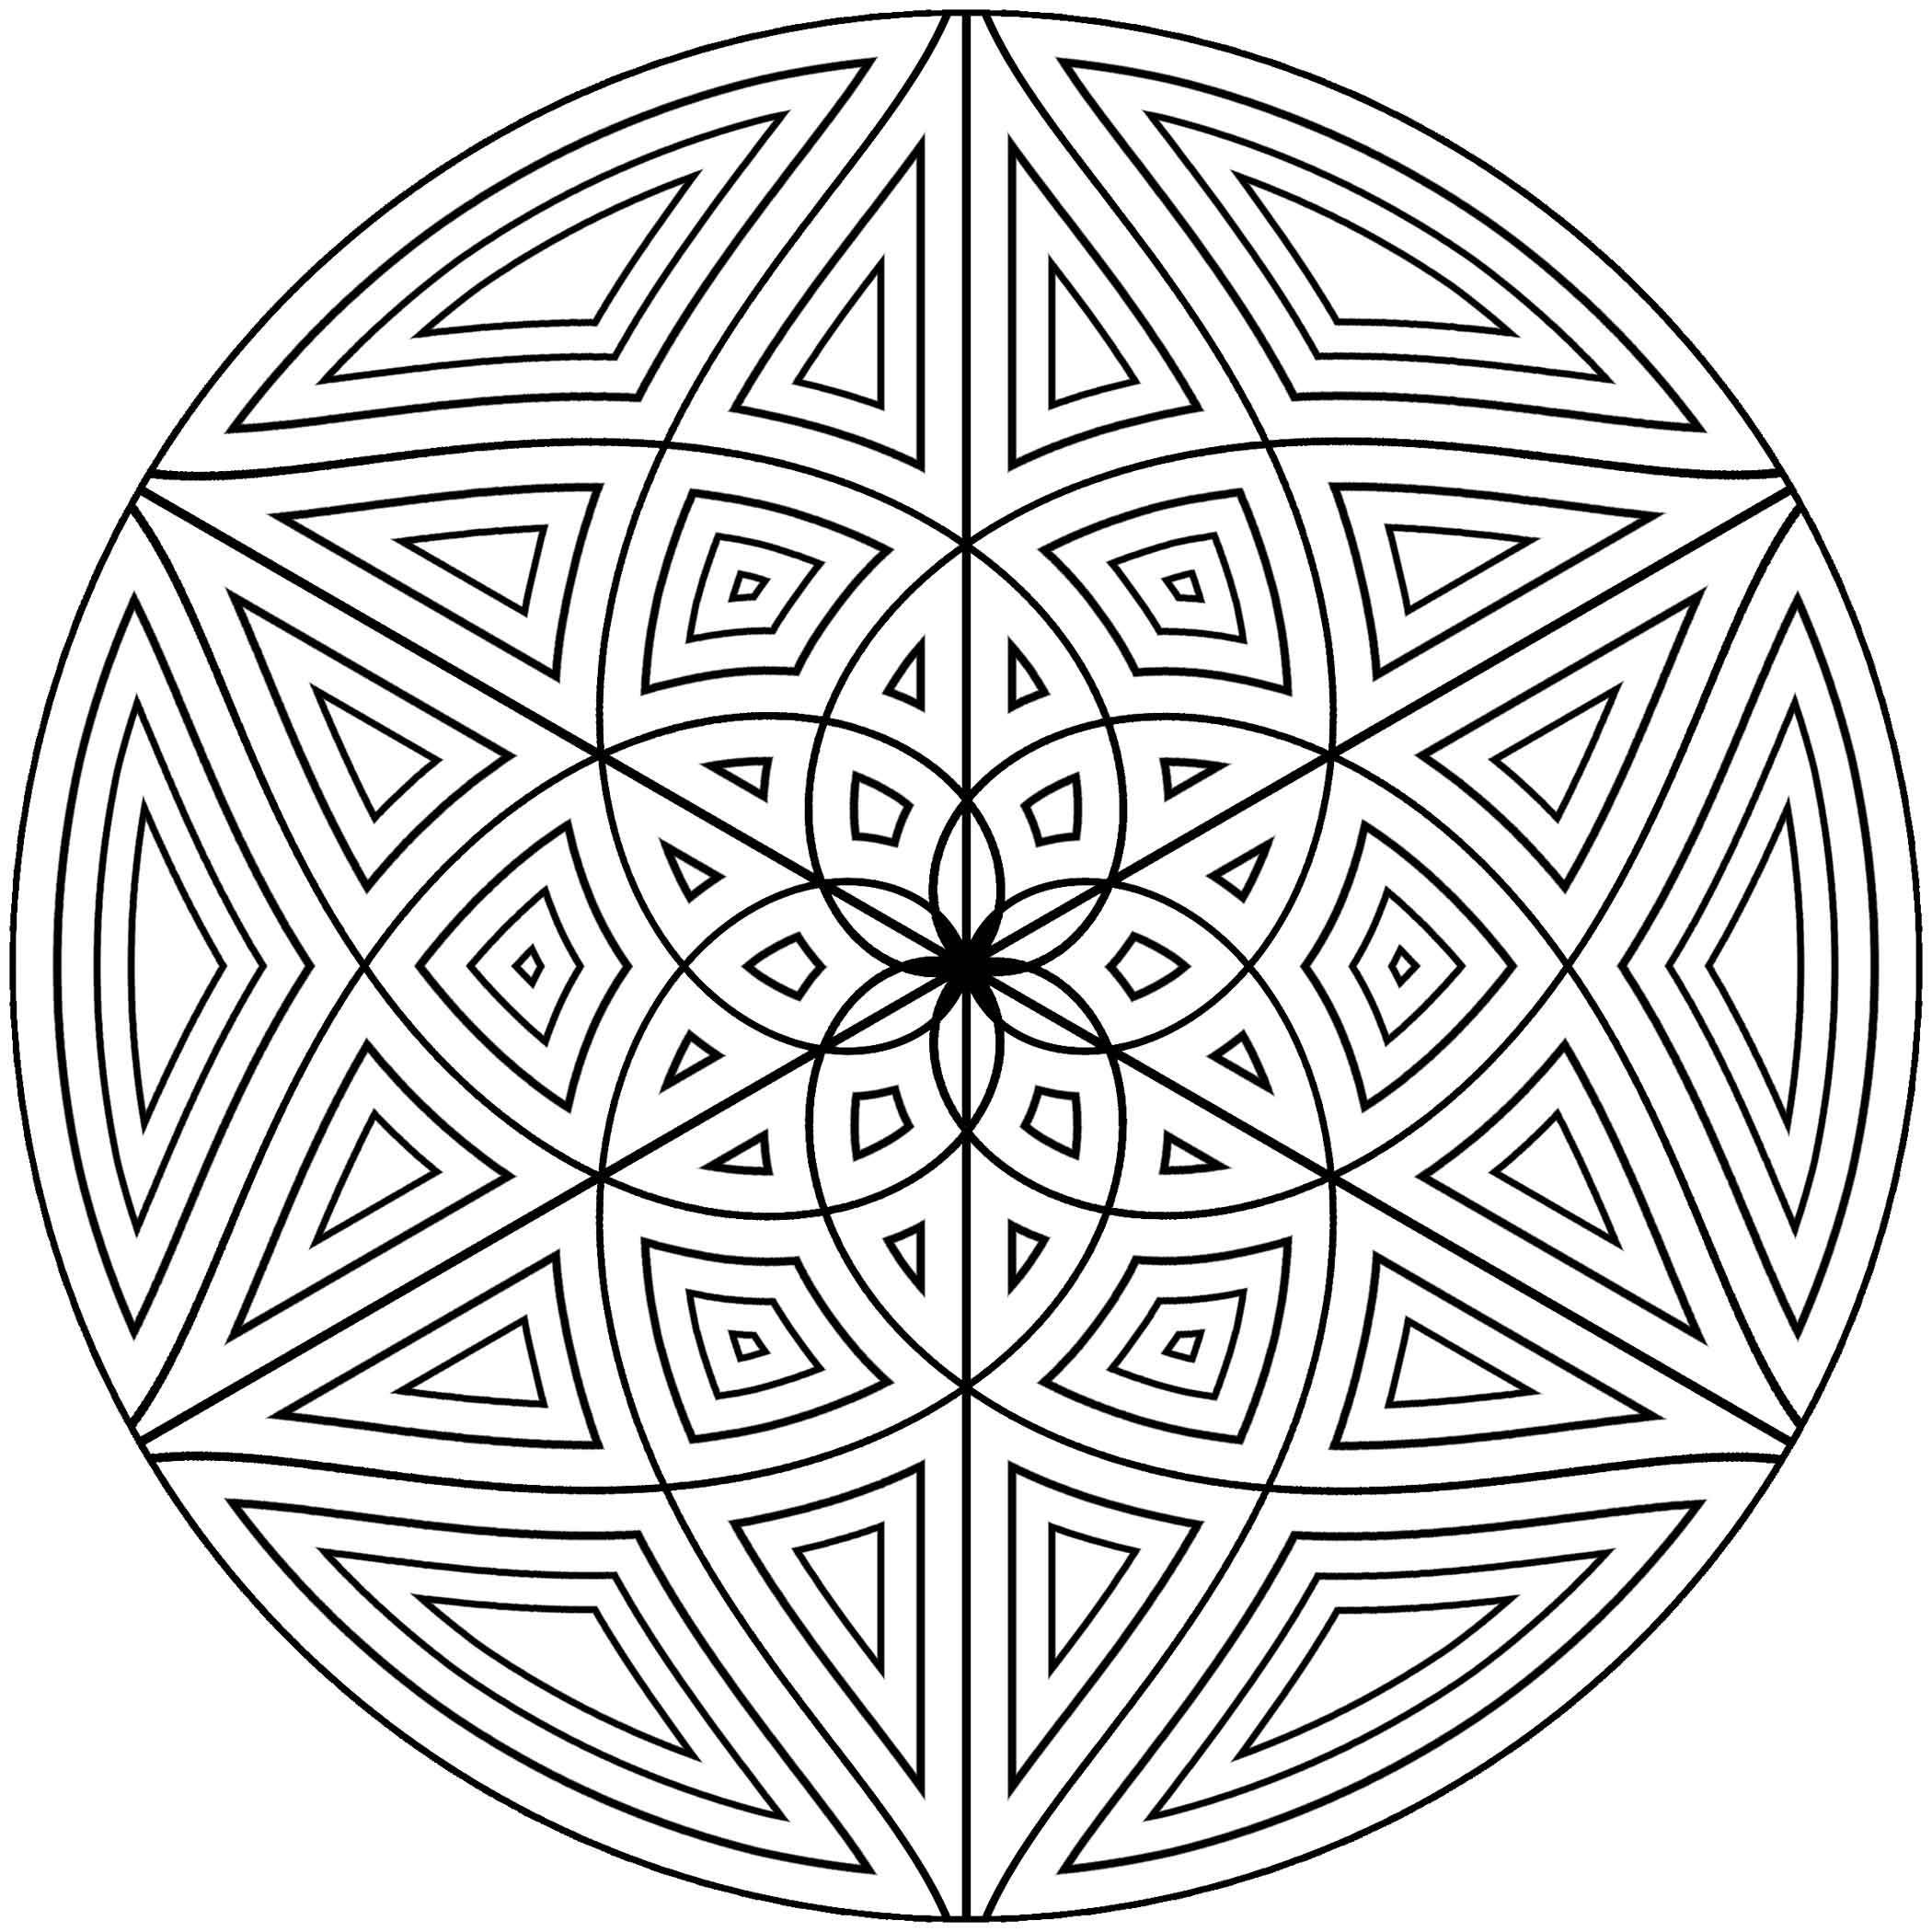 coloring book pages designs free printable geometric coloring pages for adults designs book coloring pages